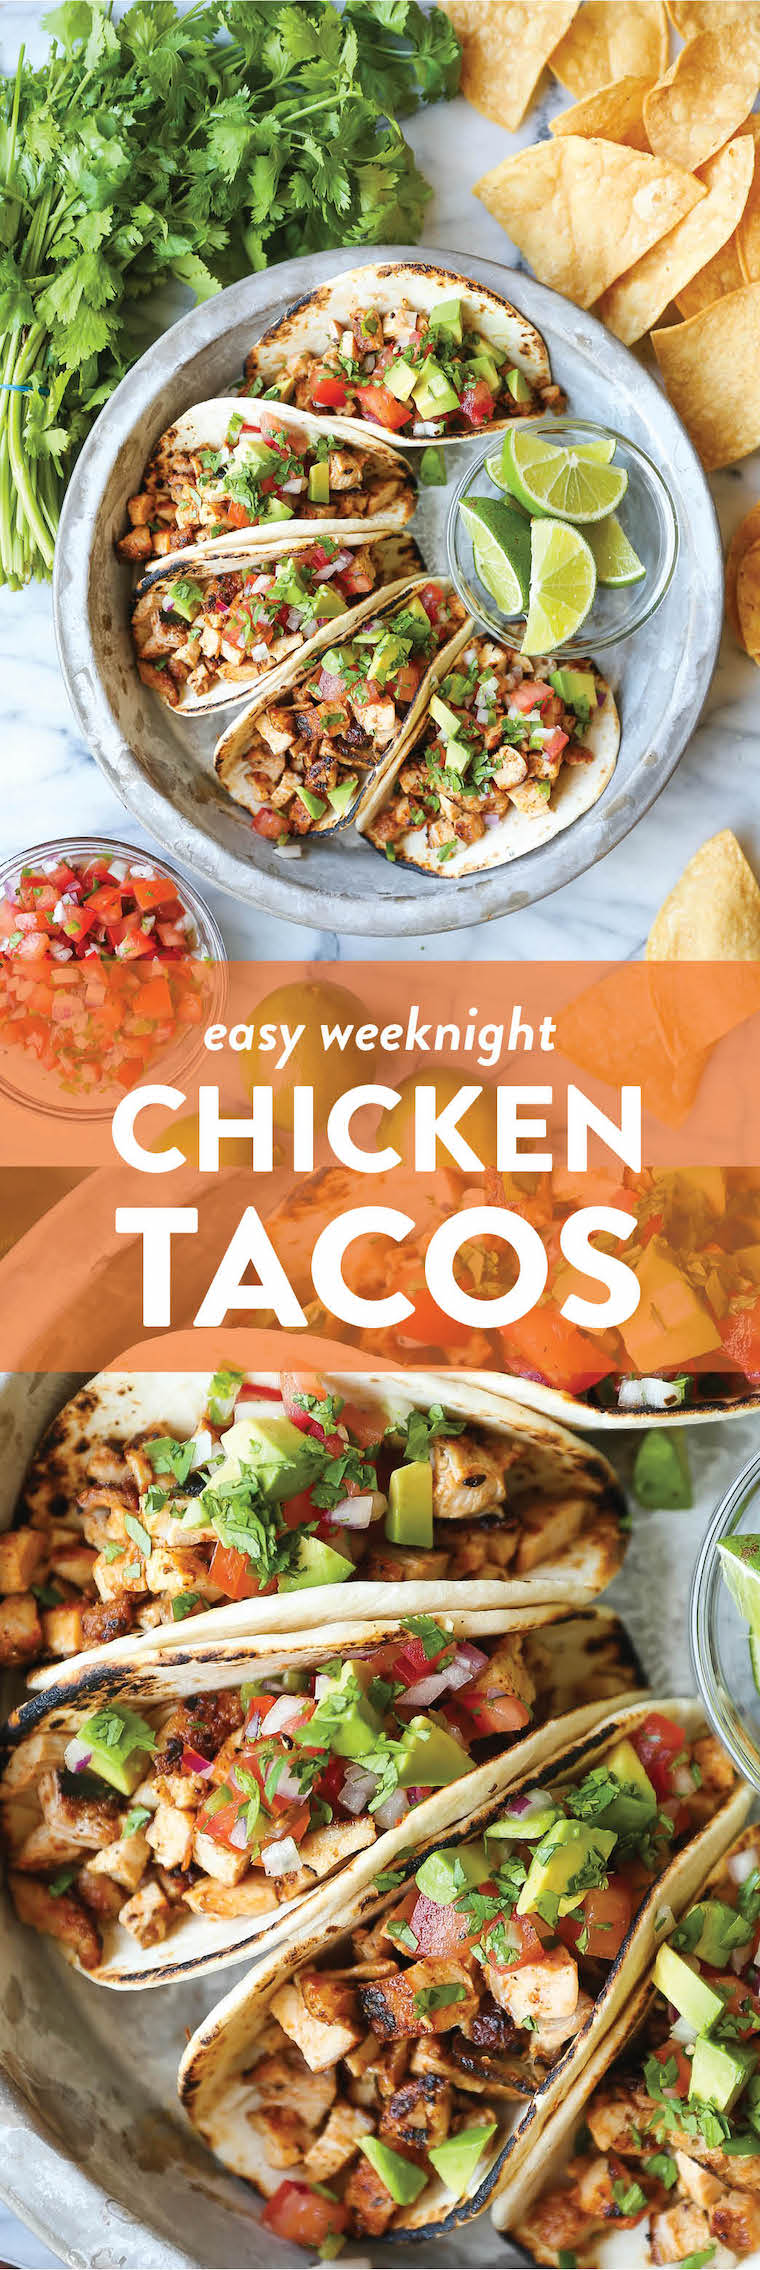 Easy Chicken Tacos - With a simple spice rub, the chicken is cooked so quickly on the stovetop! Dice into small pieces and serve with pico, avocado + lime!